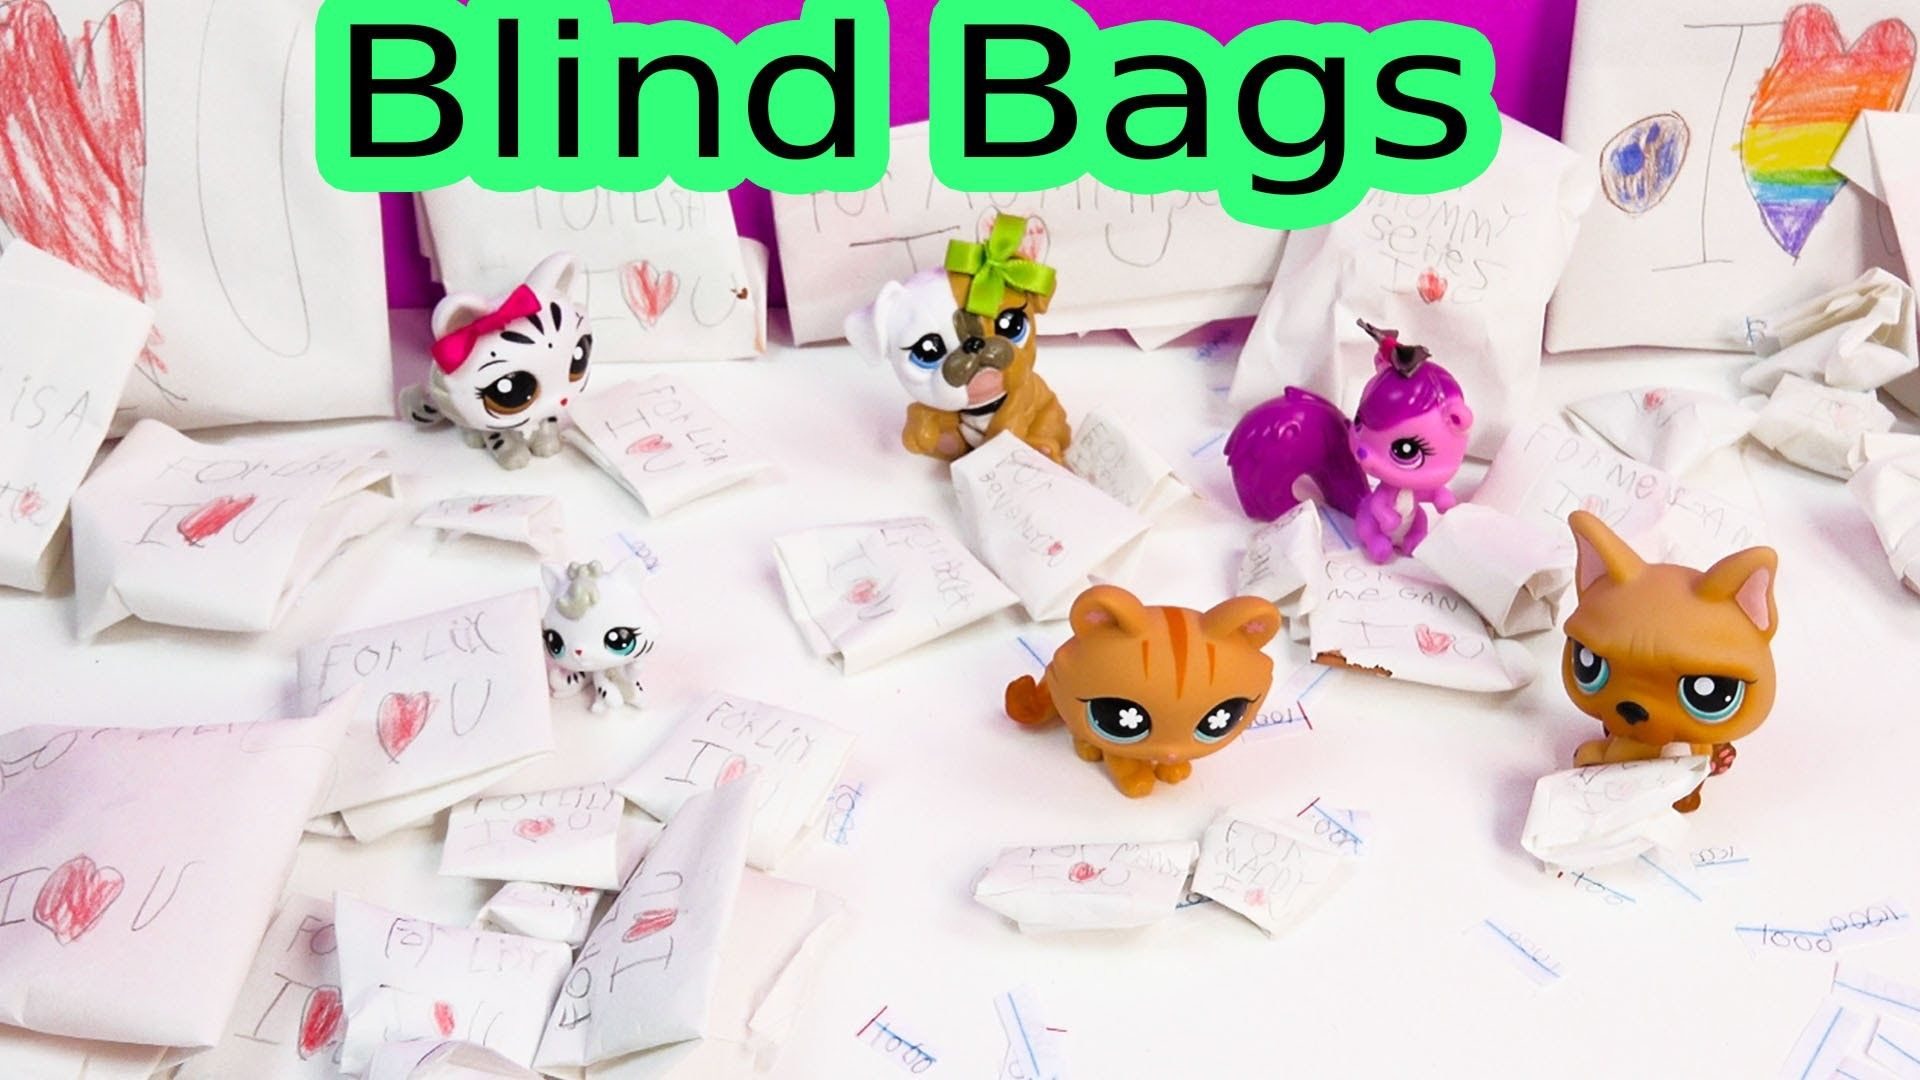 lps mystery surprise handmade blind bags toys cookieswirlc fan mail lot littlest pet shop. Black Bedroom Furniture Sets. Home Design Ideas